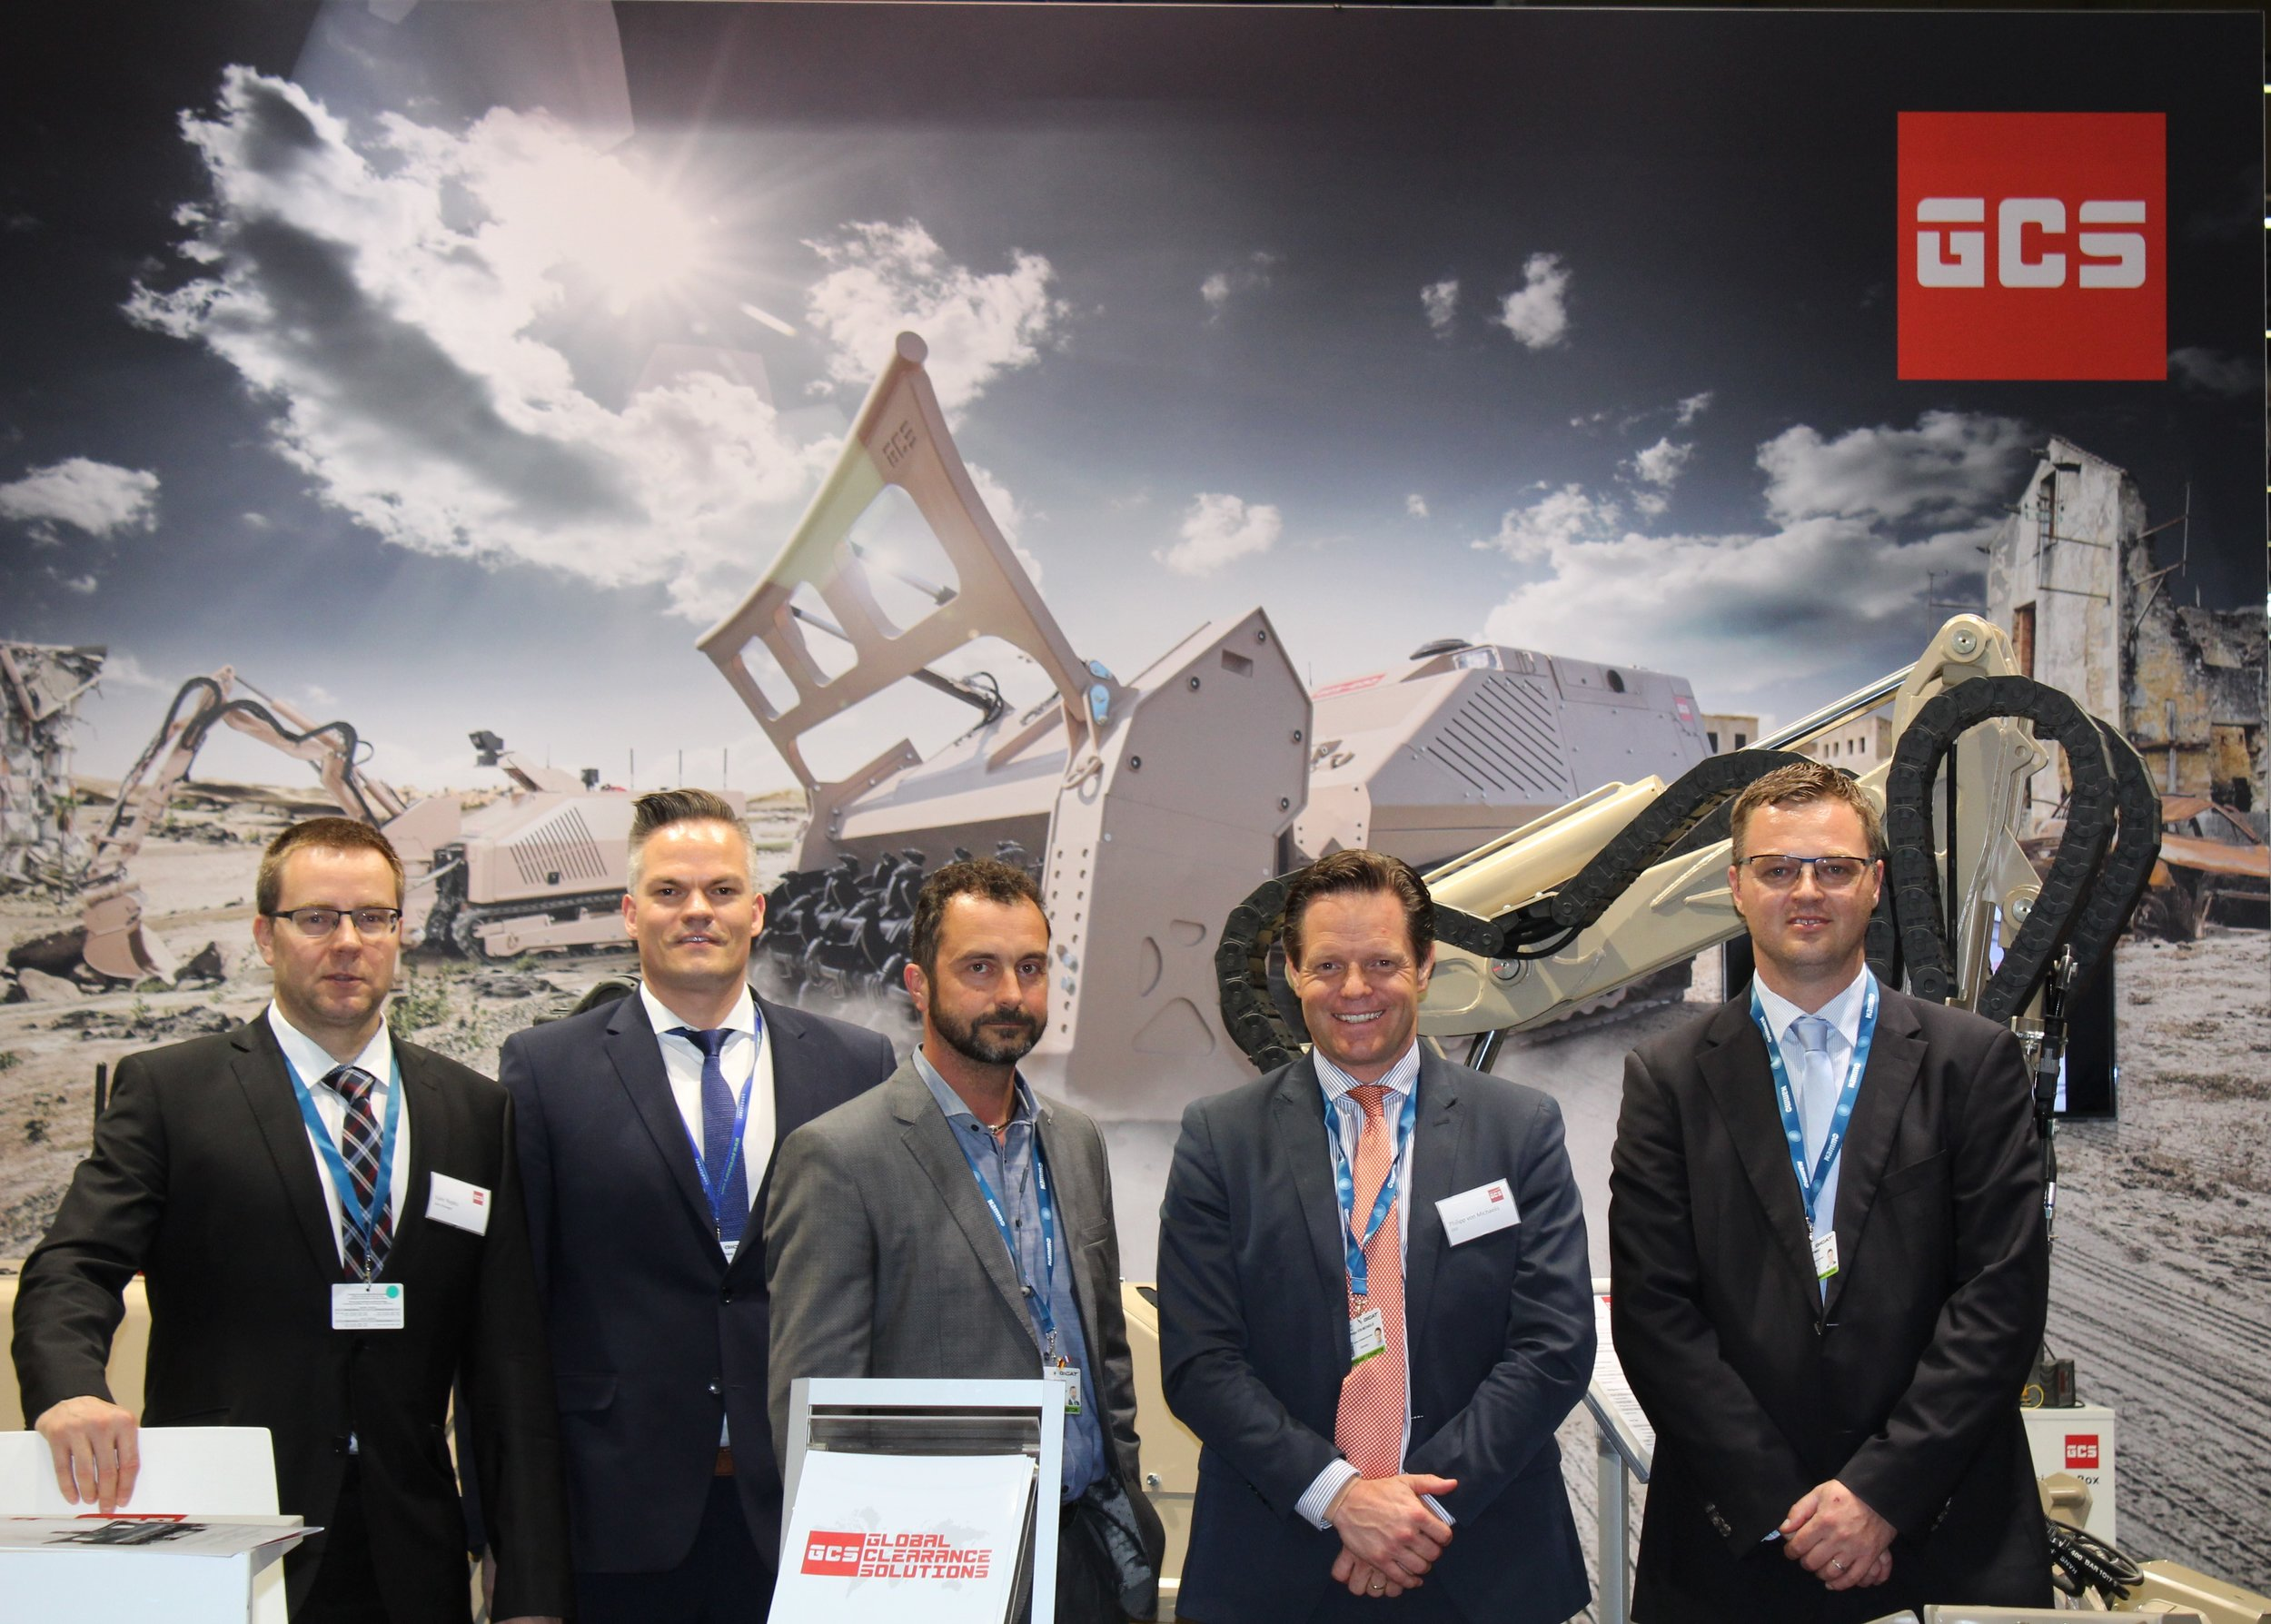 We would like to thank all visitors for coming to see us at EUROSATORY 2018 in Paris and we look forward to seeing you again very soon. Whatever your challenges are GCS is happy to assist you with our team of expert to find the most suitable solution.